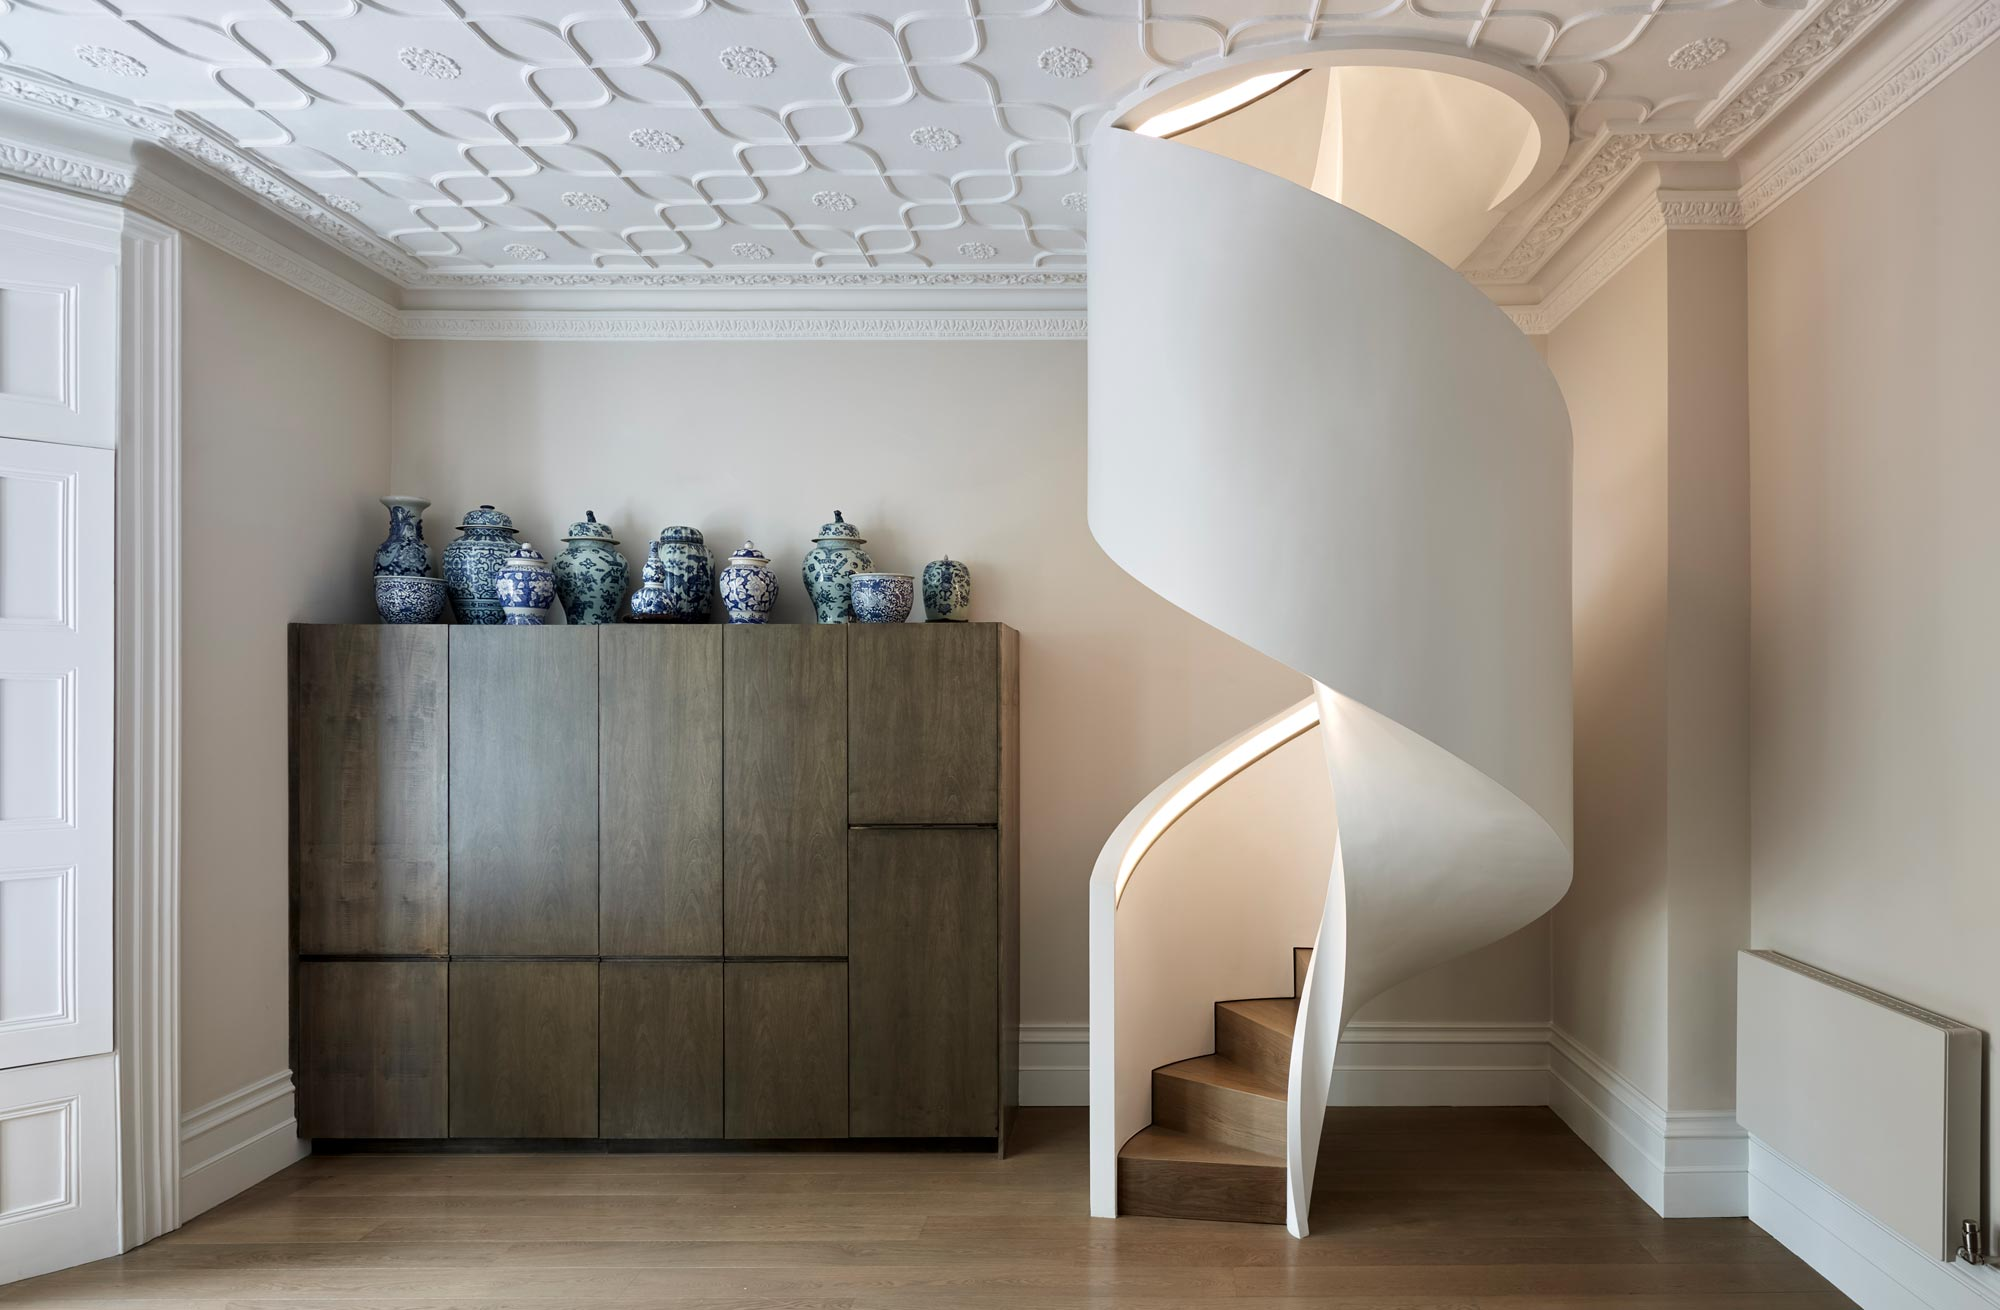 Staircase lighting concealed in the recessed handrail